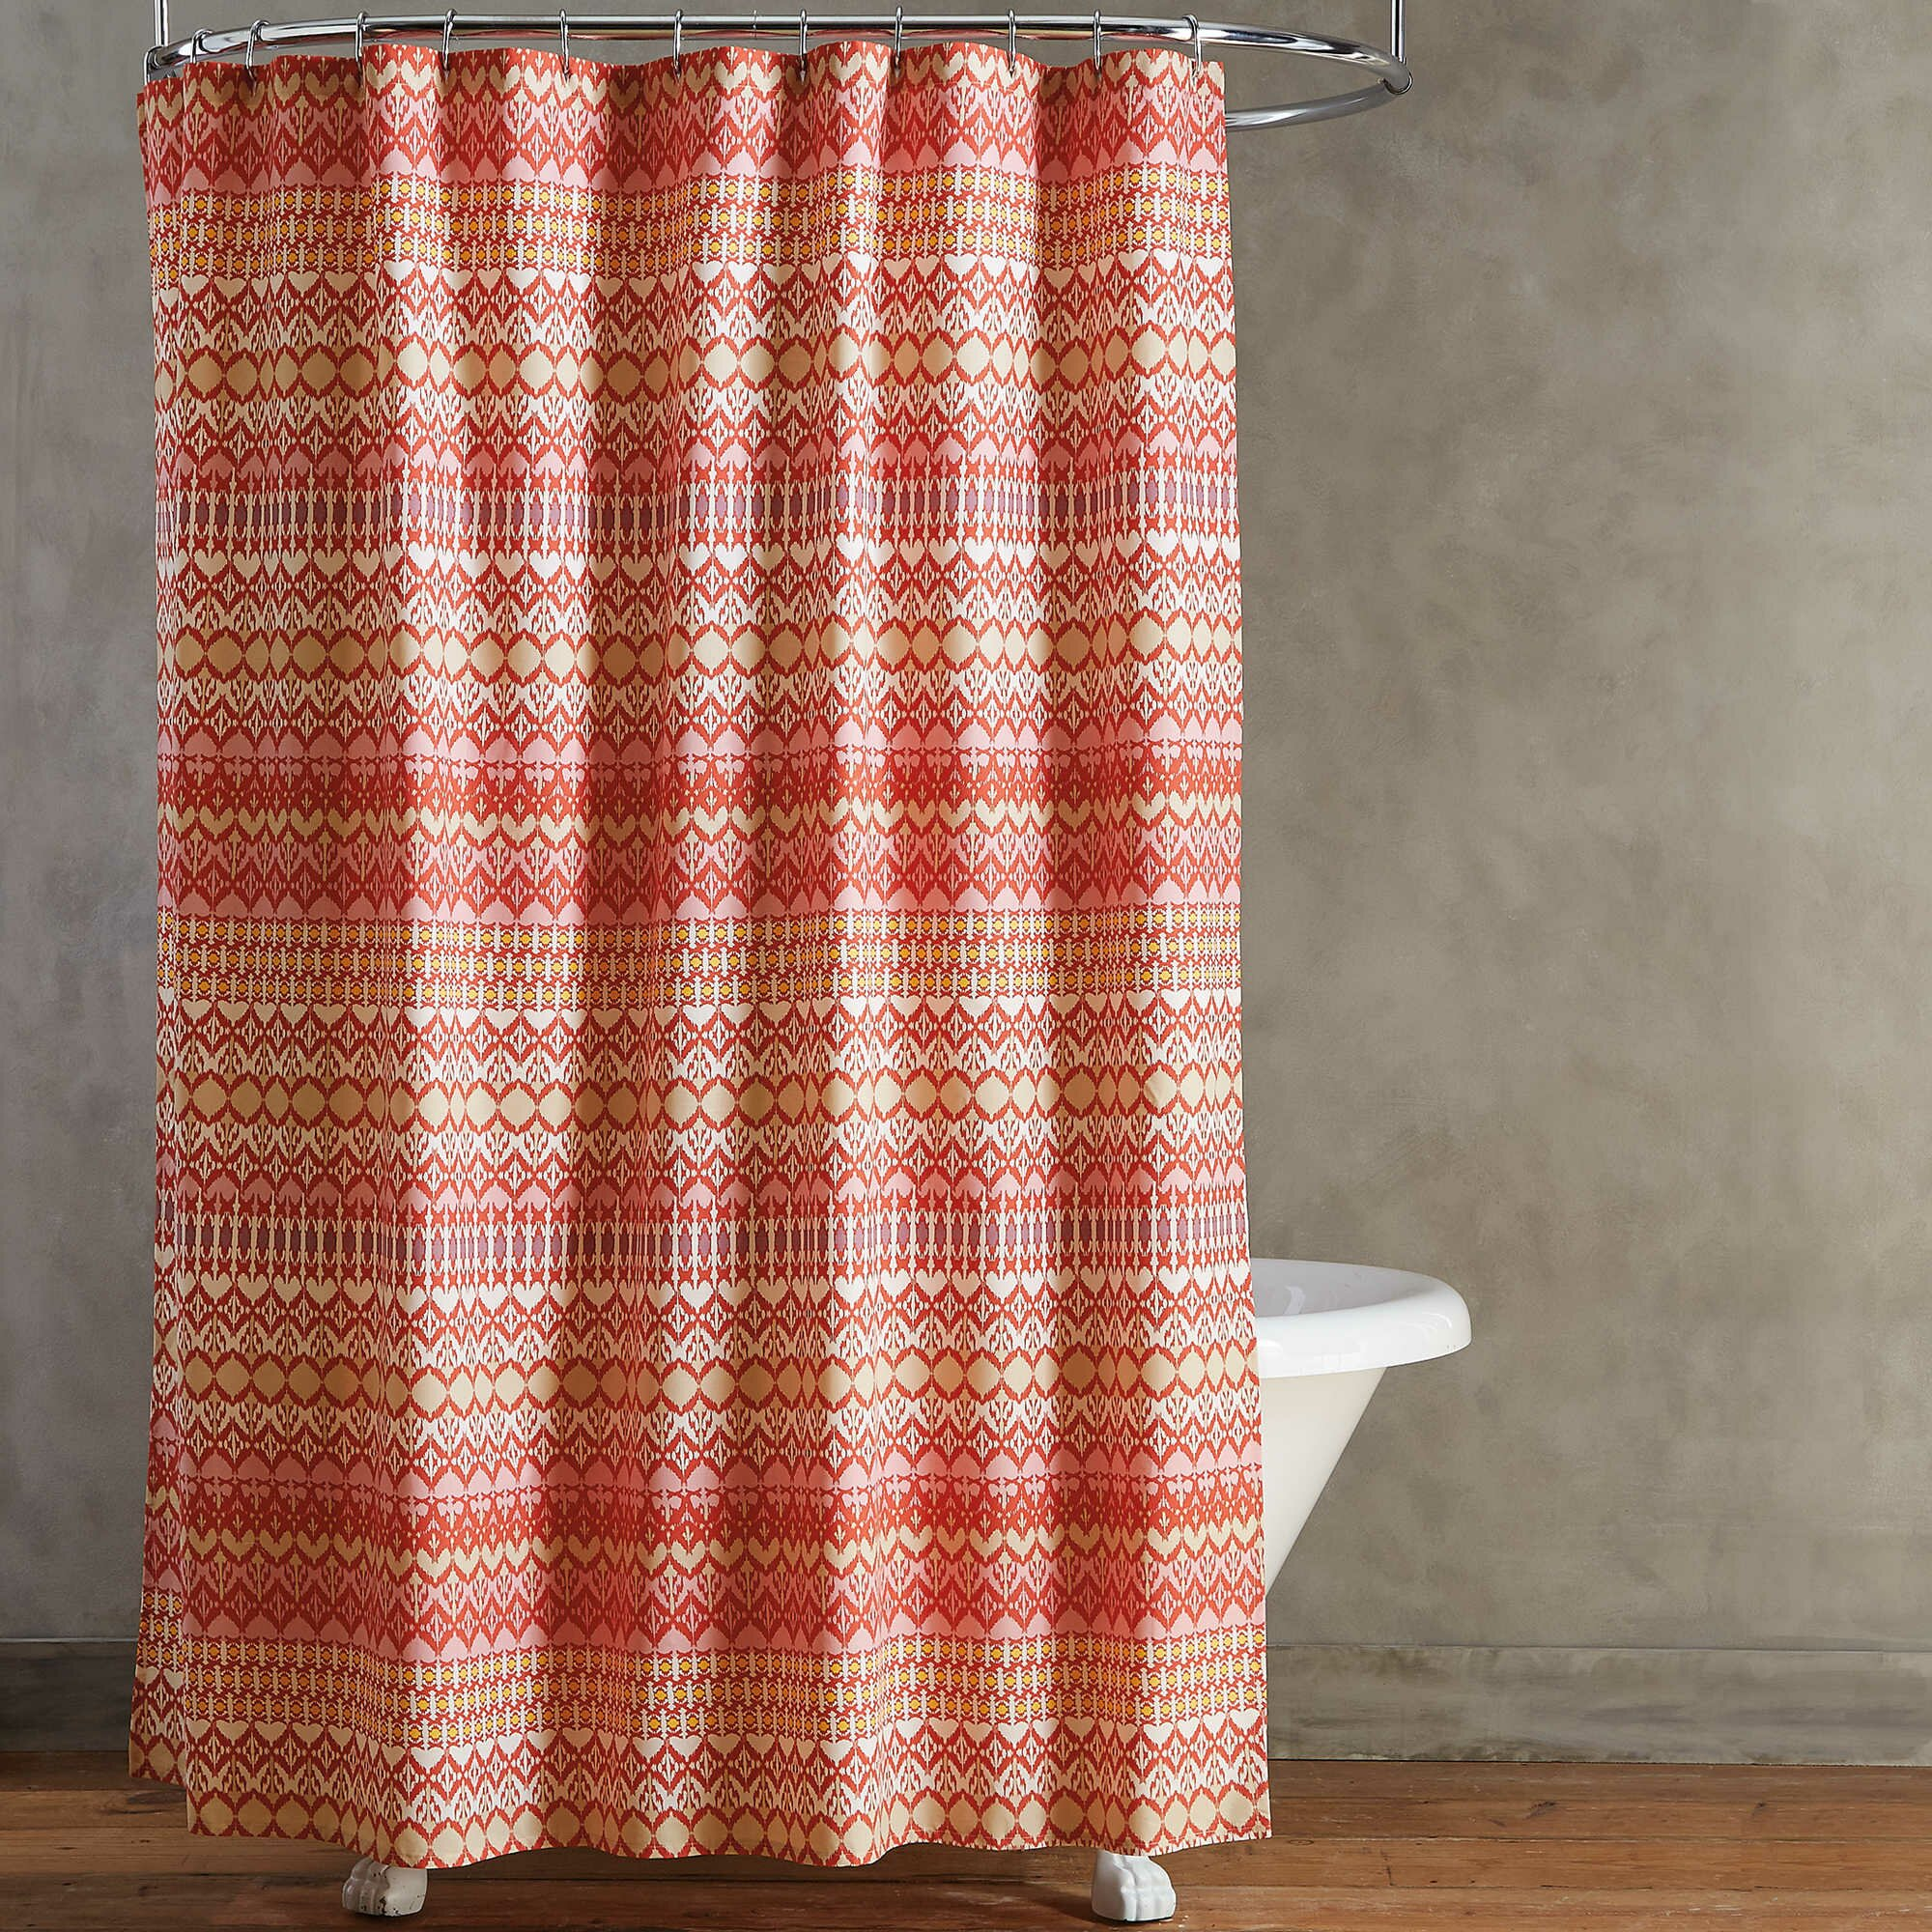 Curtain Cheap Cloth Shower Curtains